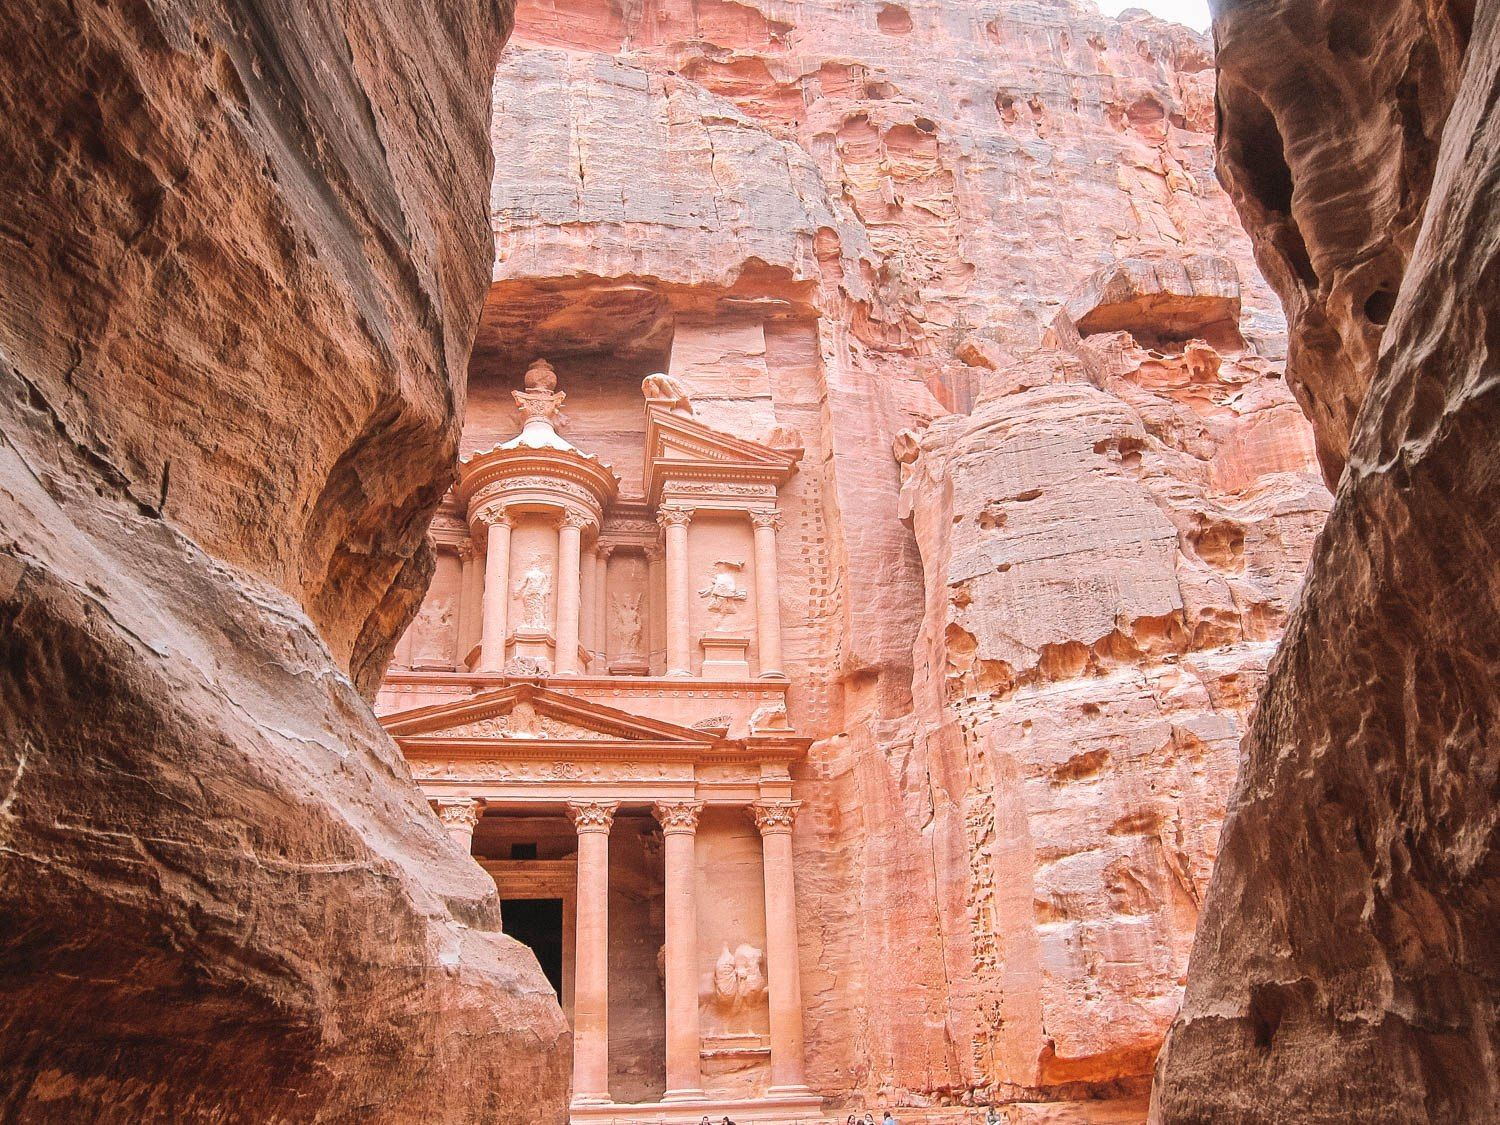 The Best Time to Travel to Jordan #traveltojordan